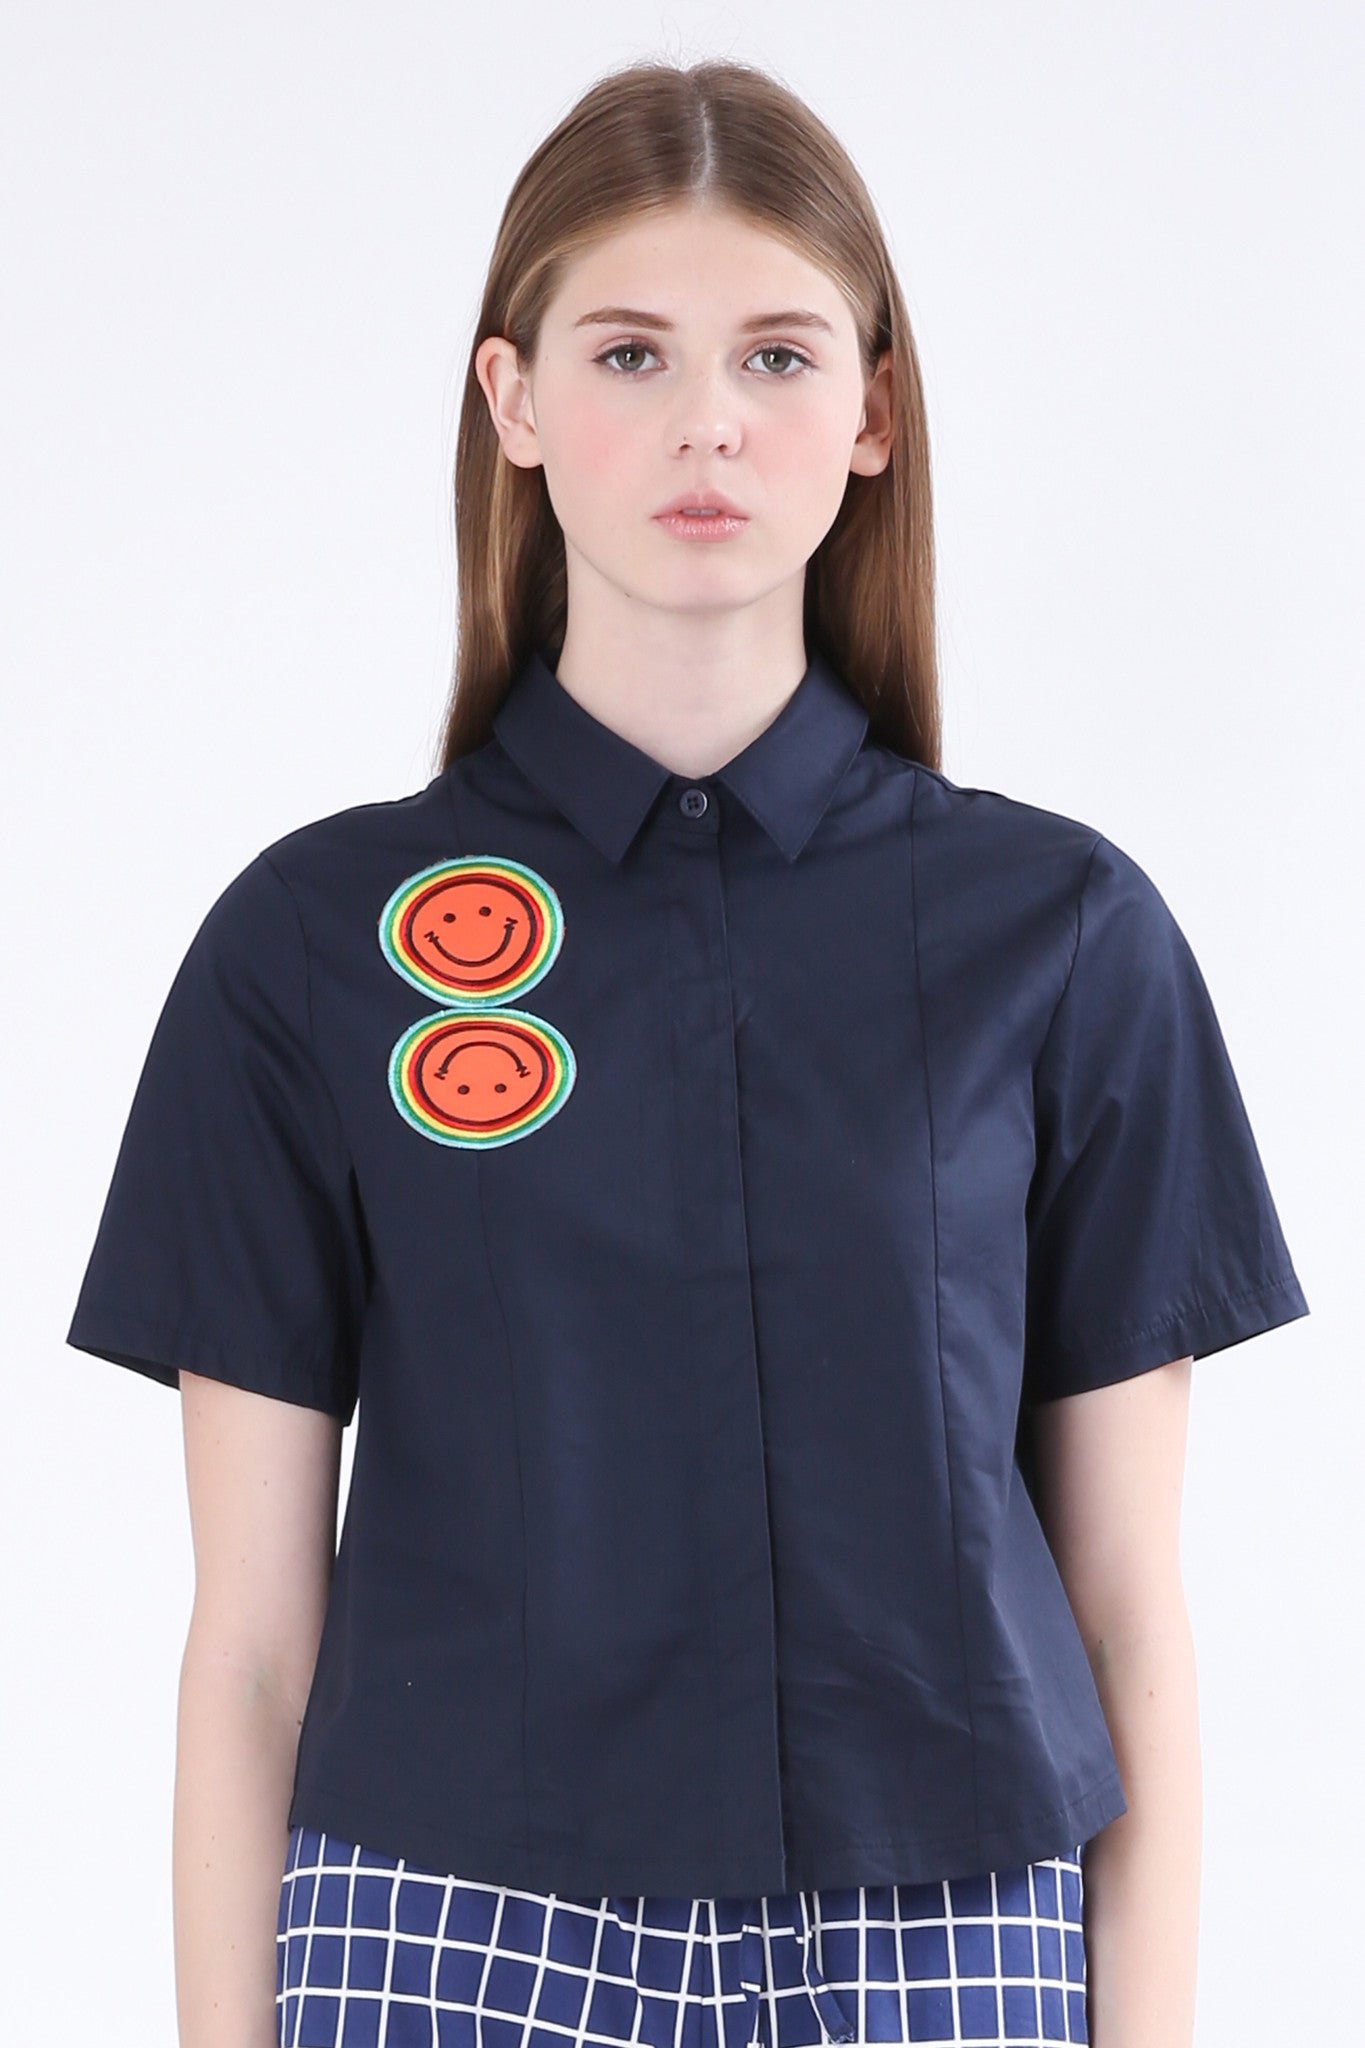 ZIZTAR Smile Collar Shirt